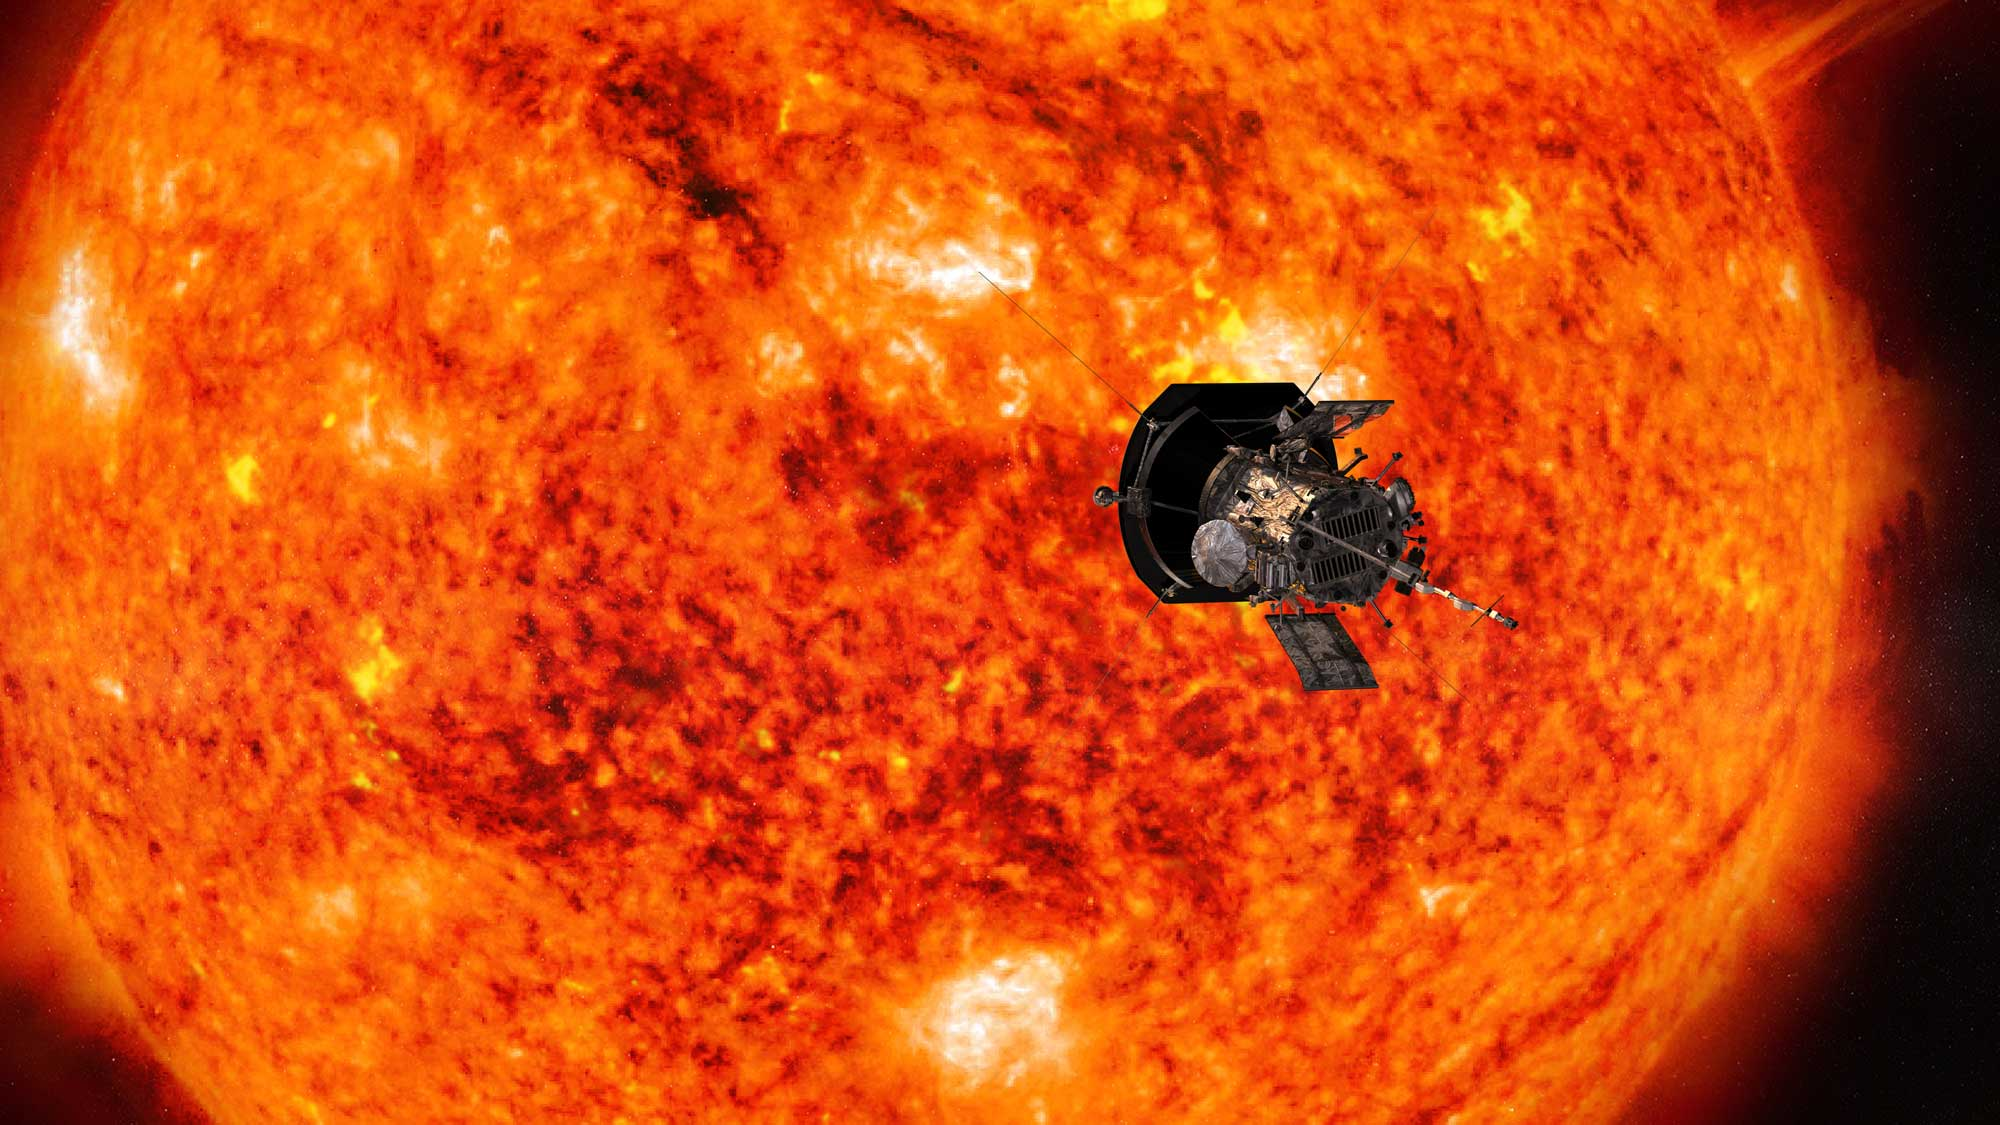 Artist's concept of the Parker Solar Probe spacecraft approaching the sun. In order to unlock the mysteries of the corona, but also to protect a society that is increasingly dependent on technology from the threats of space weather, we will send Parker Solar Probe to touch the sun. Image credit: NASA